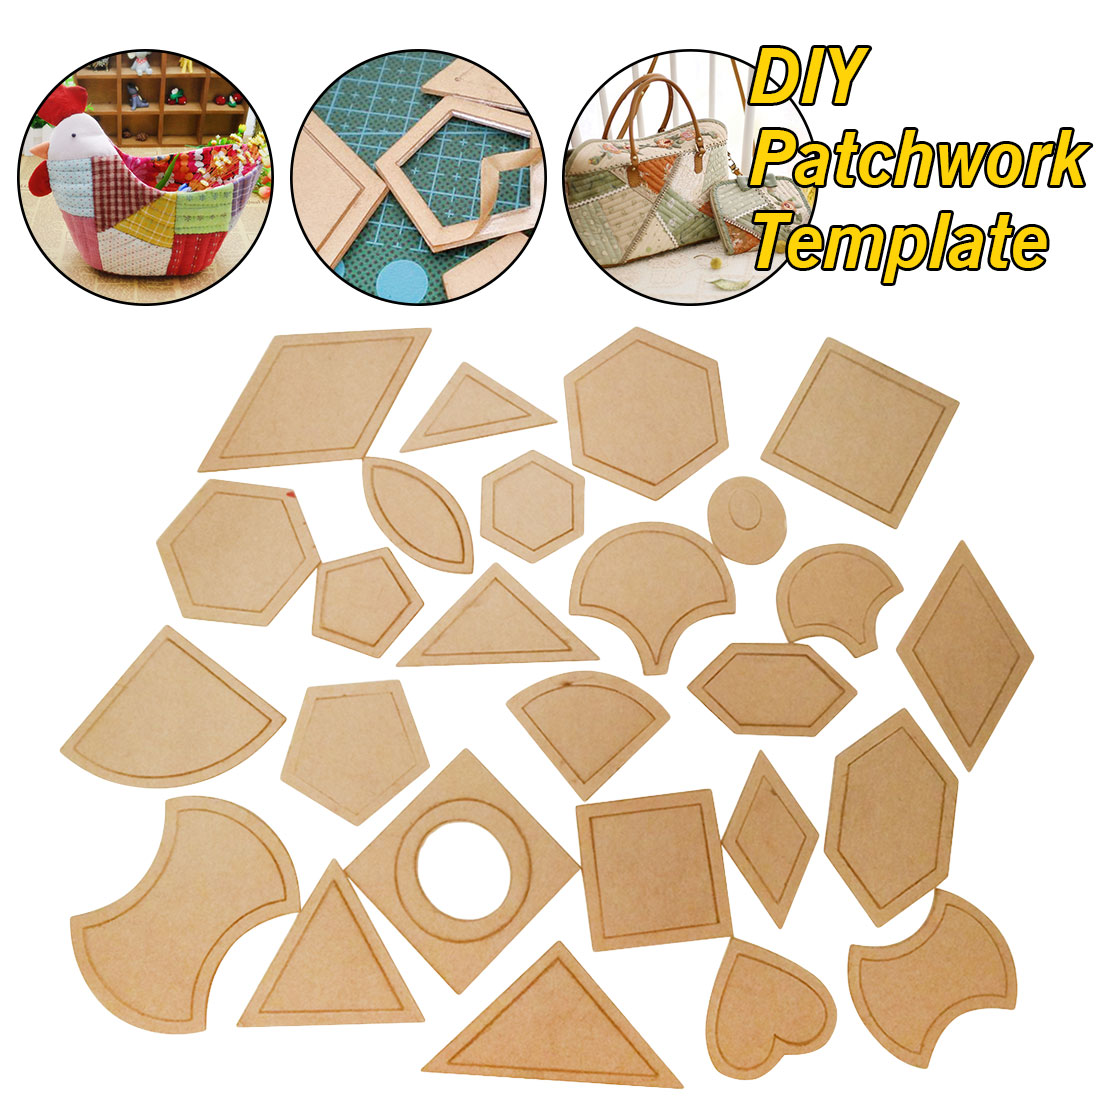 27Pcs//Set Patchwork Templates with Clear Acrylic Seam Sample Graphic Template for Sewing Handicrafts DIY Patchwork Mixed Styling Handmade Tool Accessories